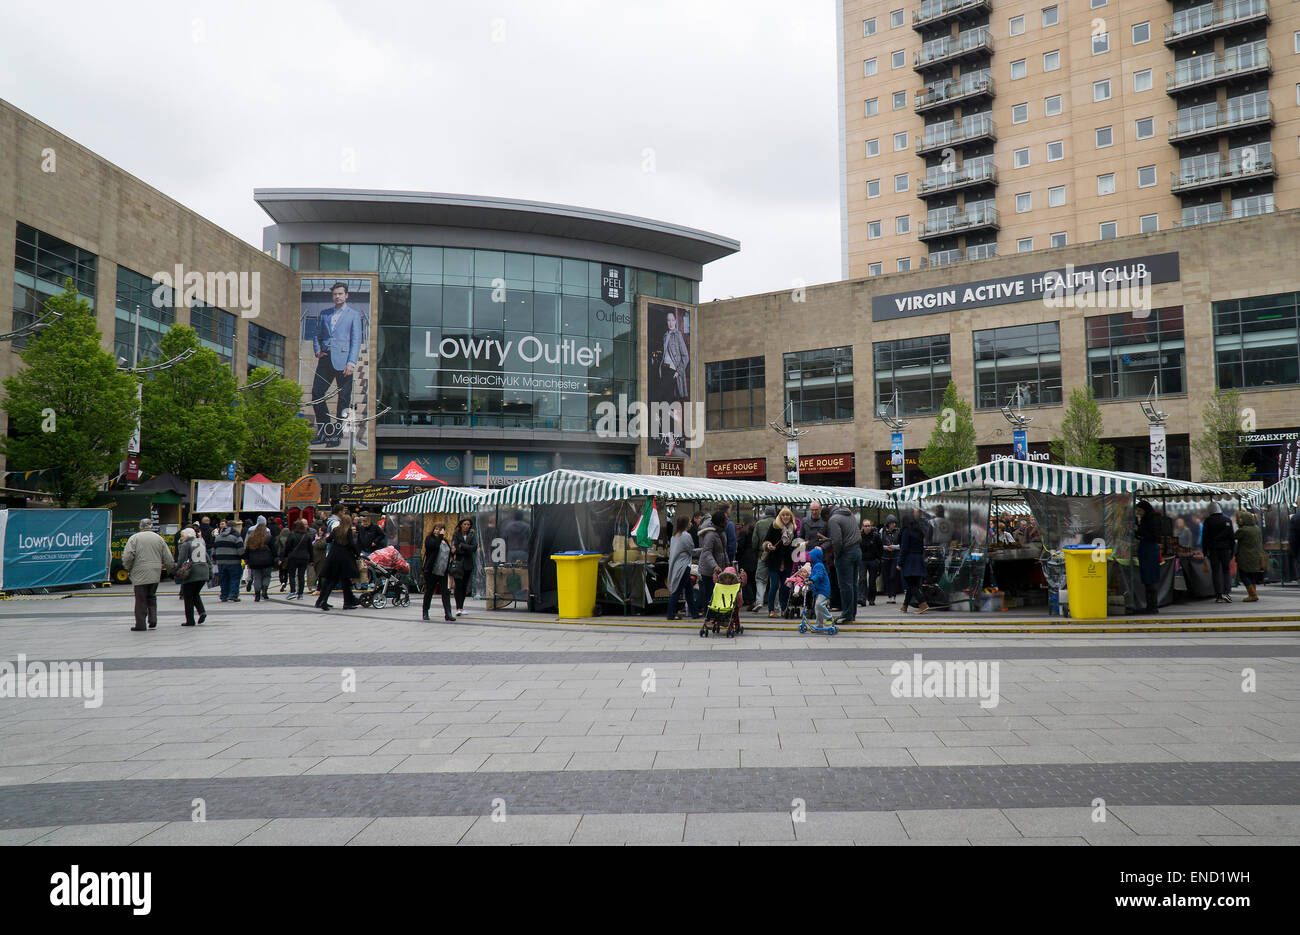 The Lowry Shopping Centre - Salford Uk - Stock Image